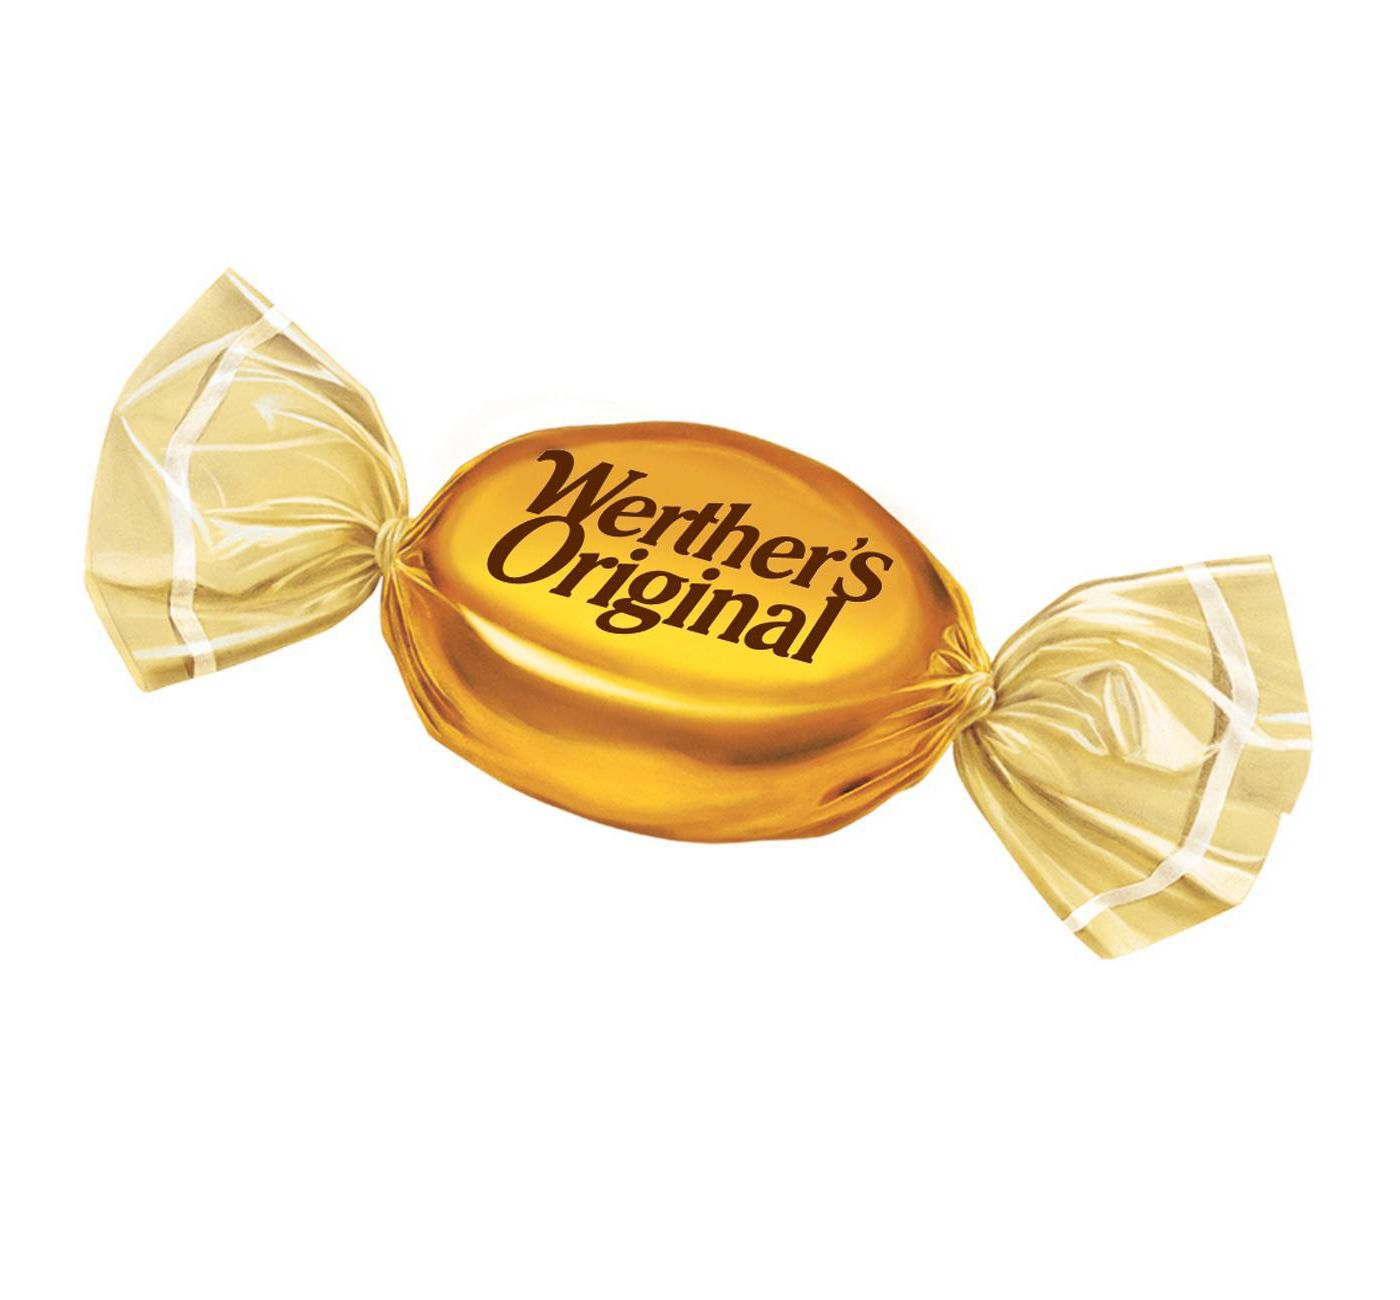 Werther's Original Caramel Hard Candies, 5.5 oz